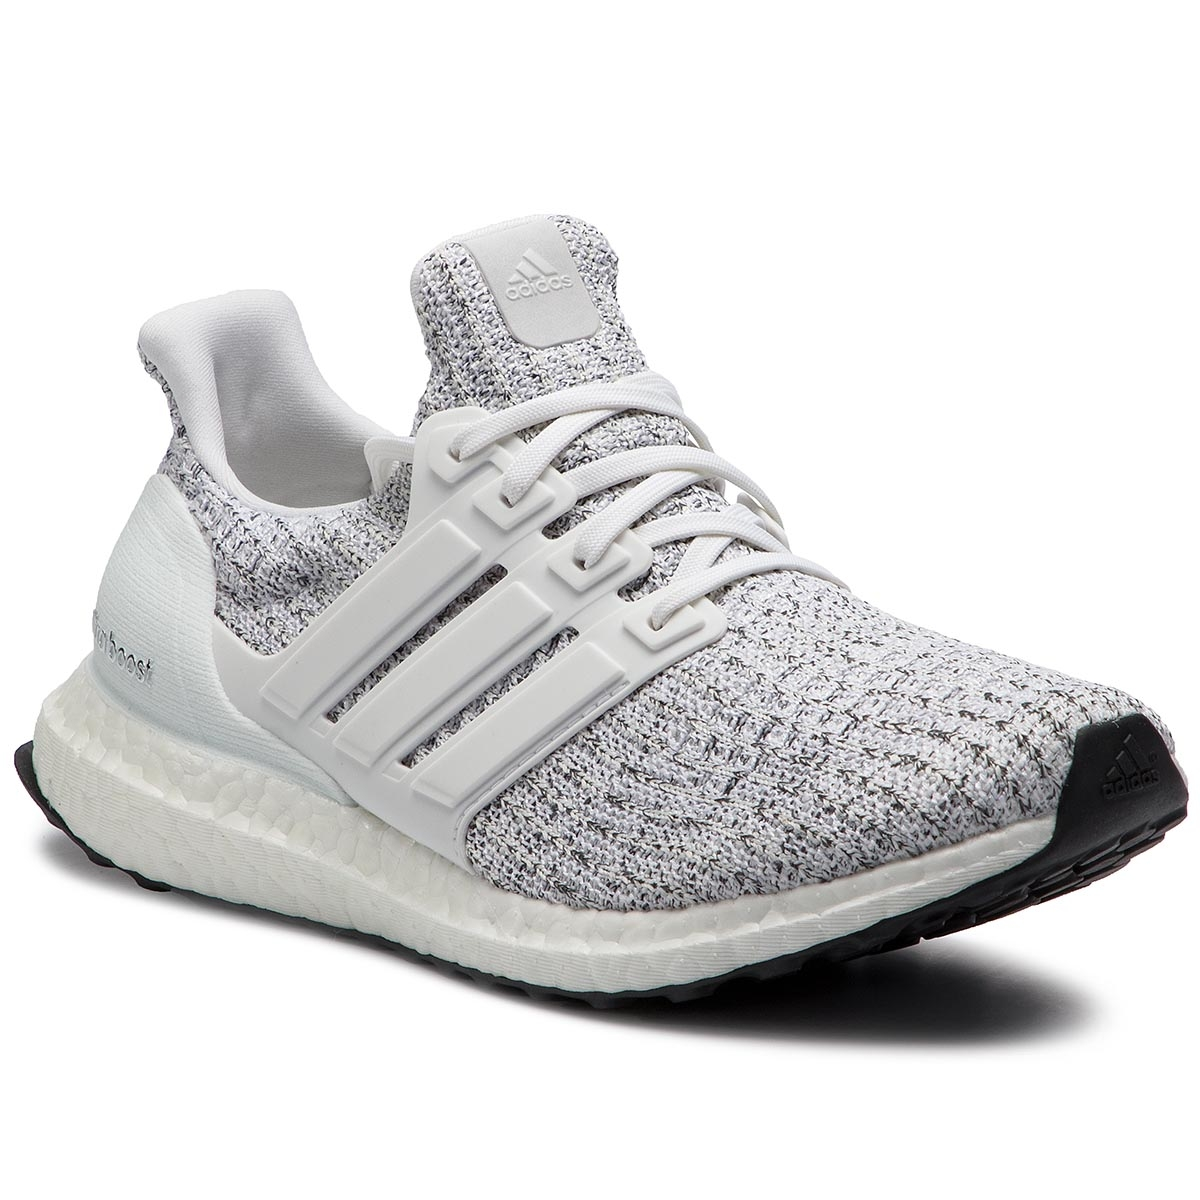 finest selection cd98e 9b768 Buty adidas UltraBoost F36155 Nondye Ftwwht Gresix. €180,00. Shoes adidas